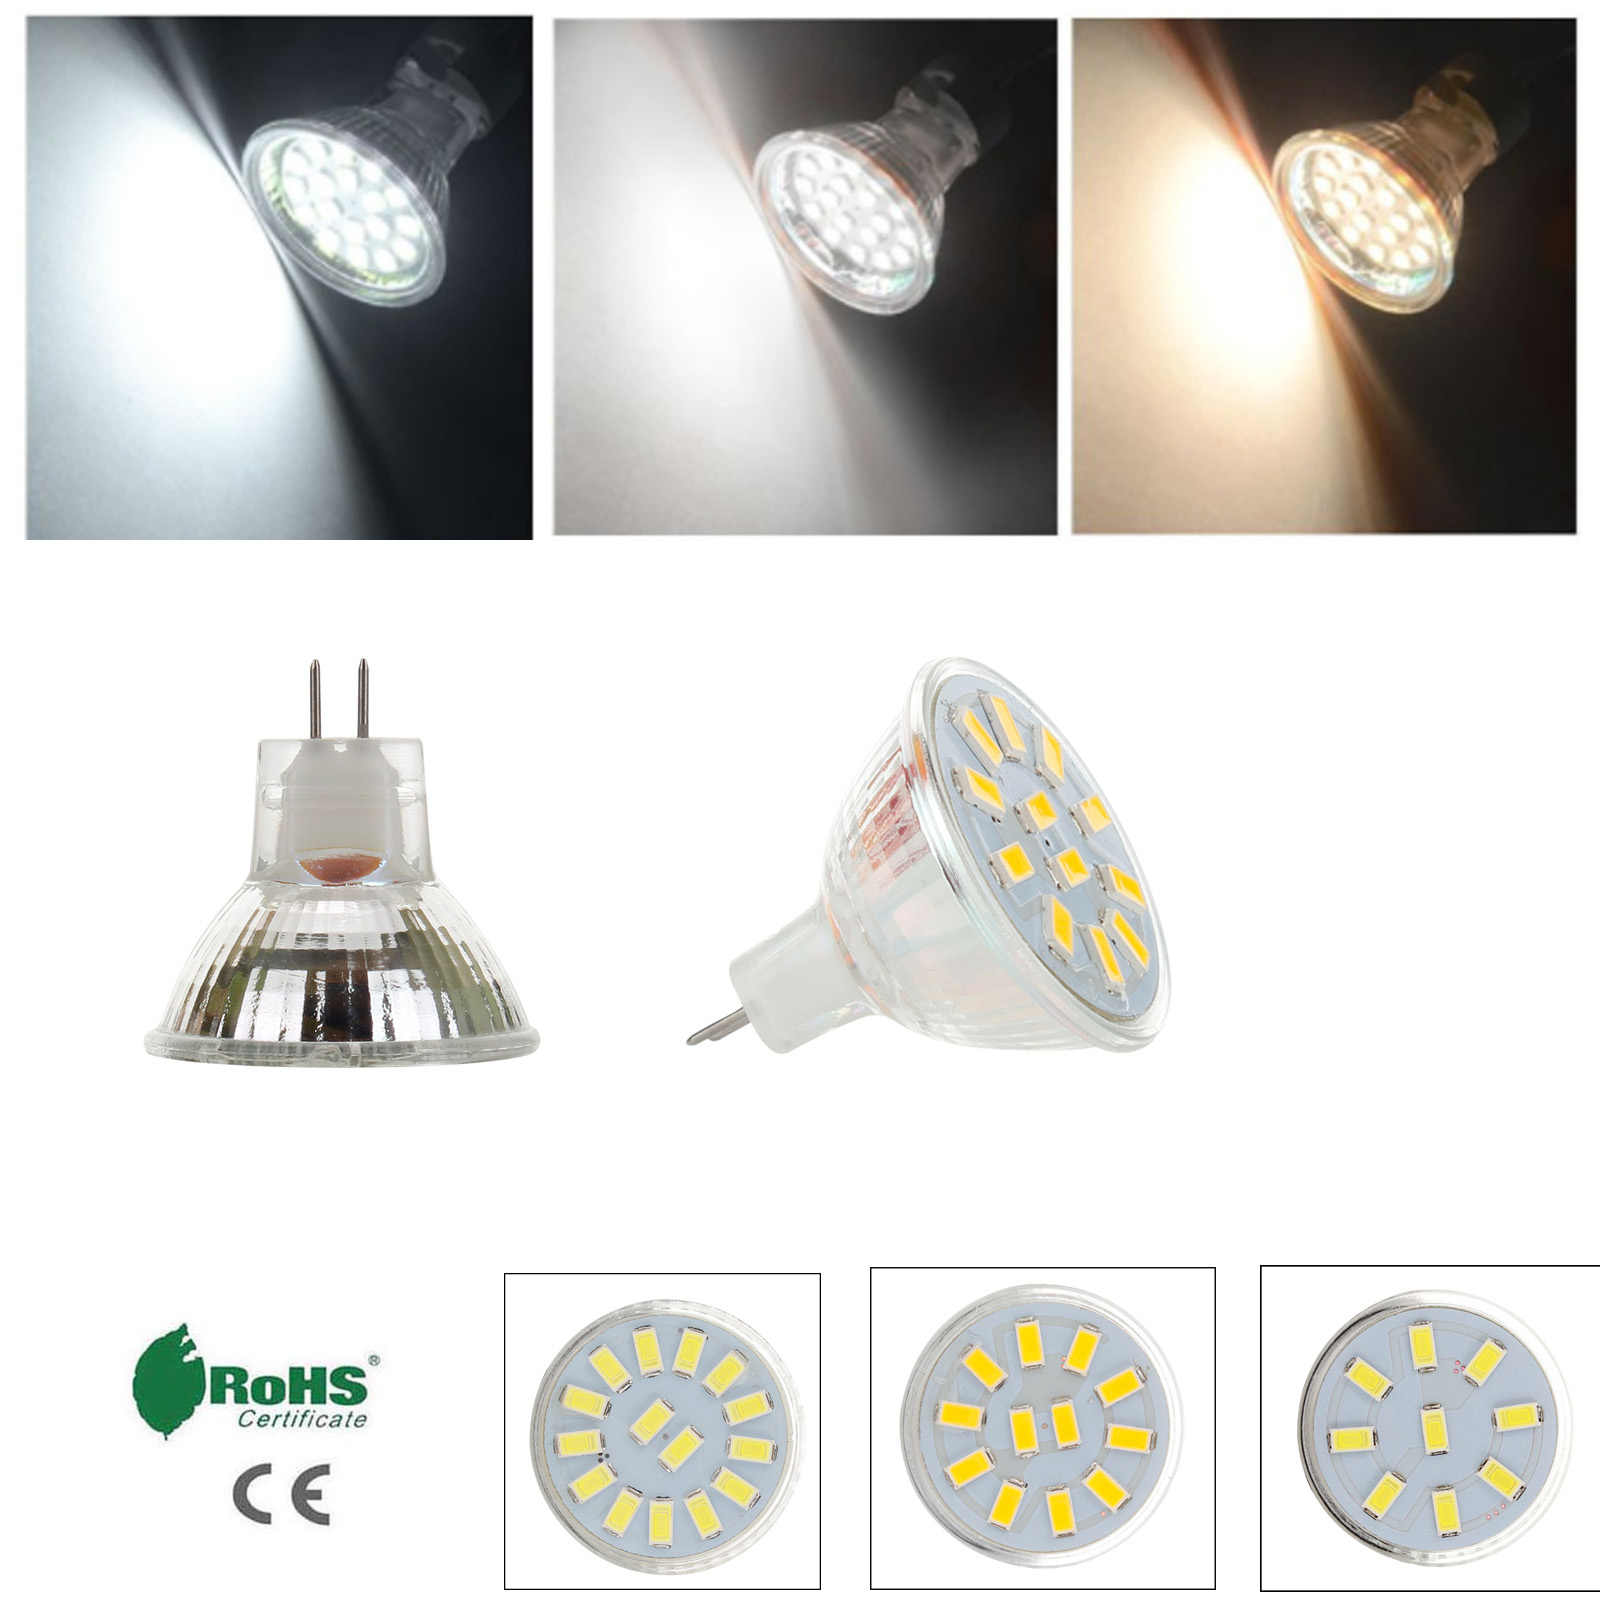 LED Bulb MR11 GU4 120LM 240LM LED Bulb 9LED 12LED 15LED 5730 SMD Warm Cold Neutral White AC/DC12V-24V Lamp Replace Halogen Light